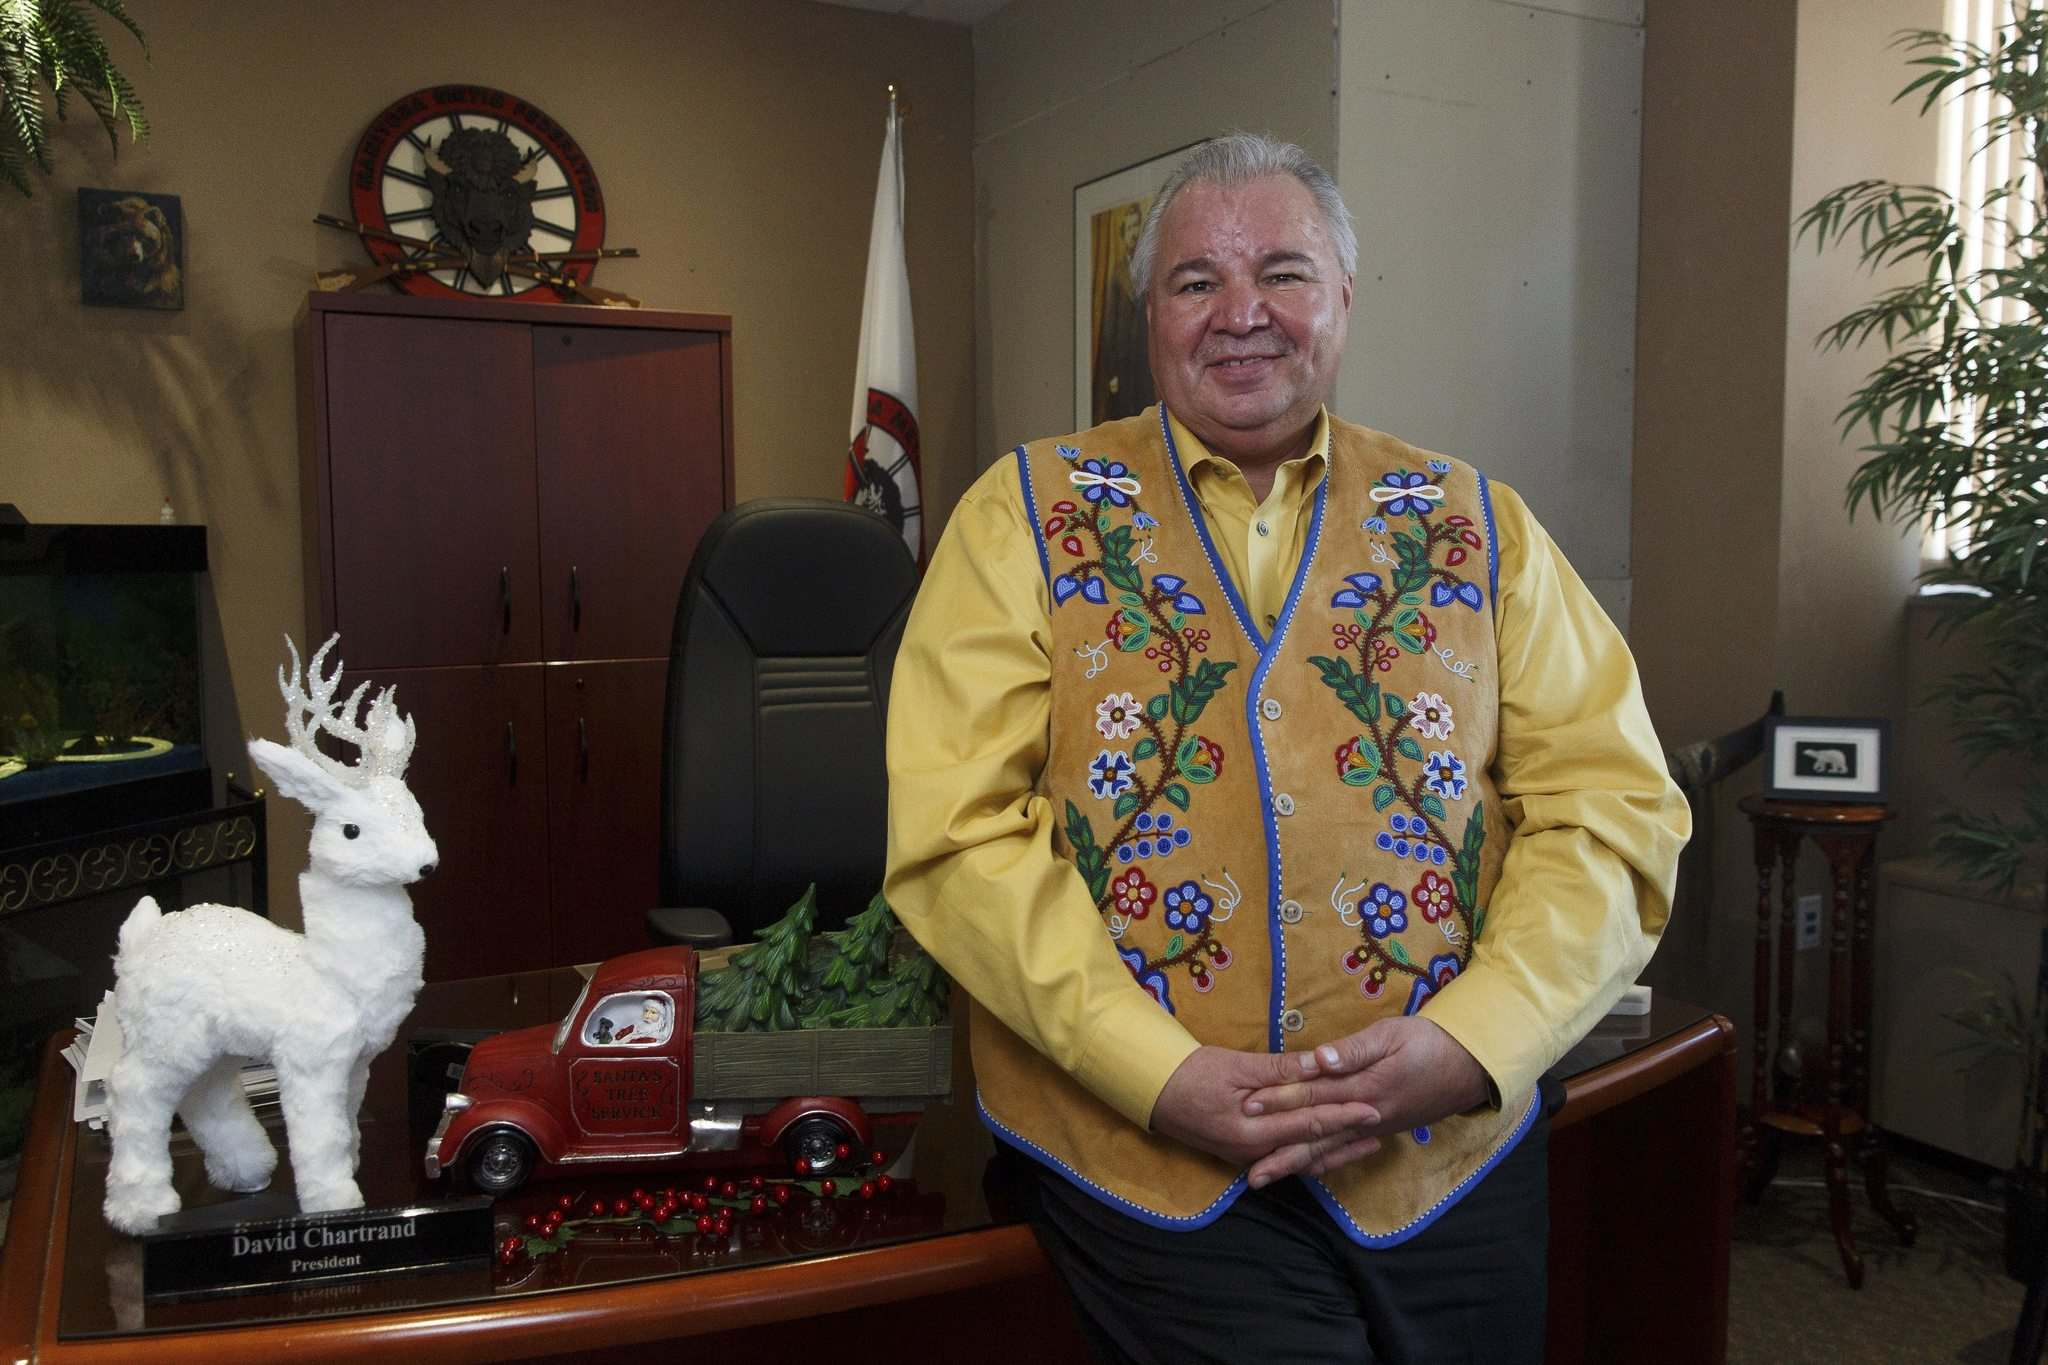 MIKE DEAL / WINNIPEG FREE PRESS</p><p>MMF president David Chartrand: every kid deserves at least some form of Christmas.</p>